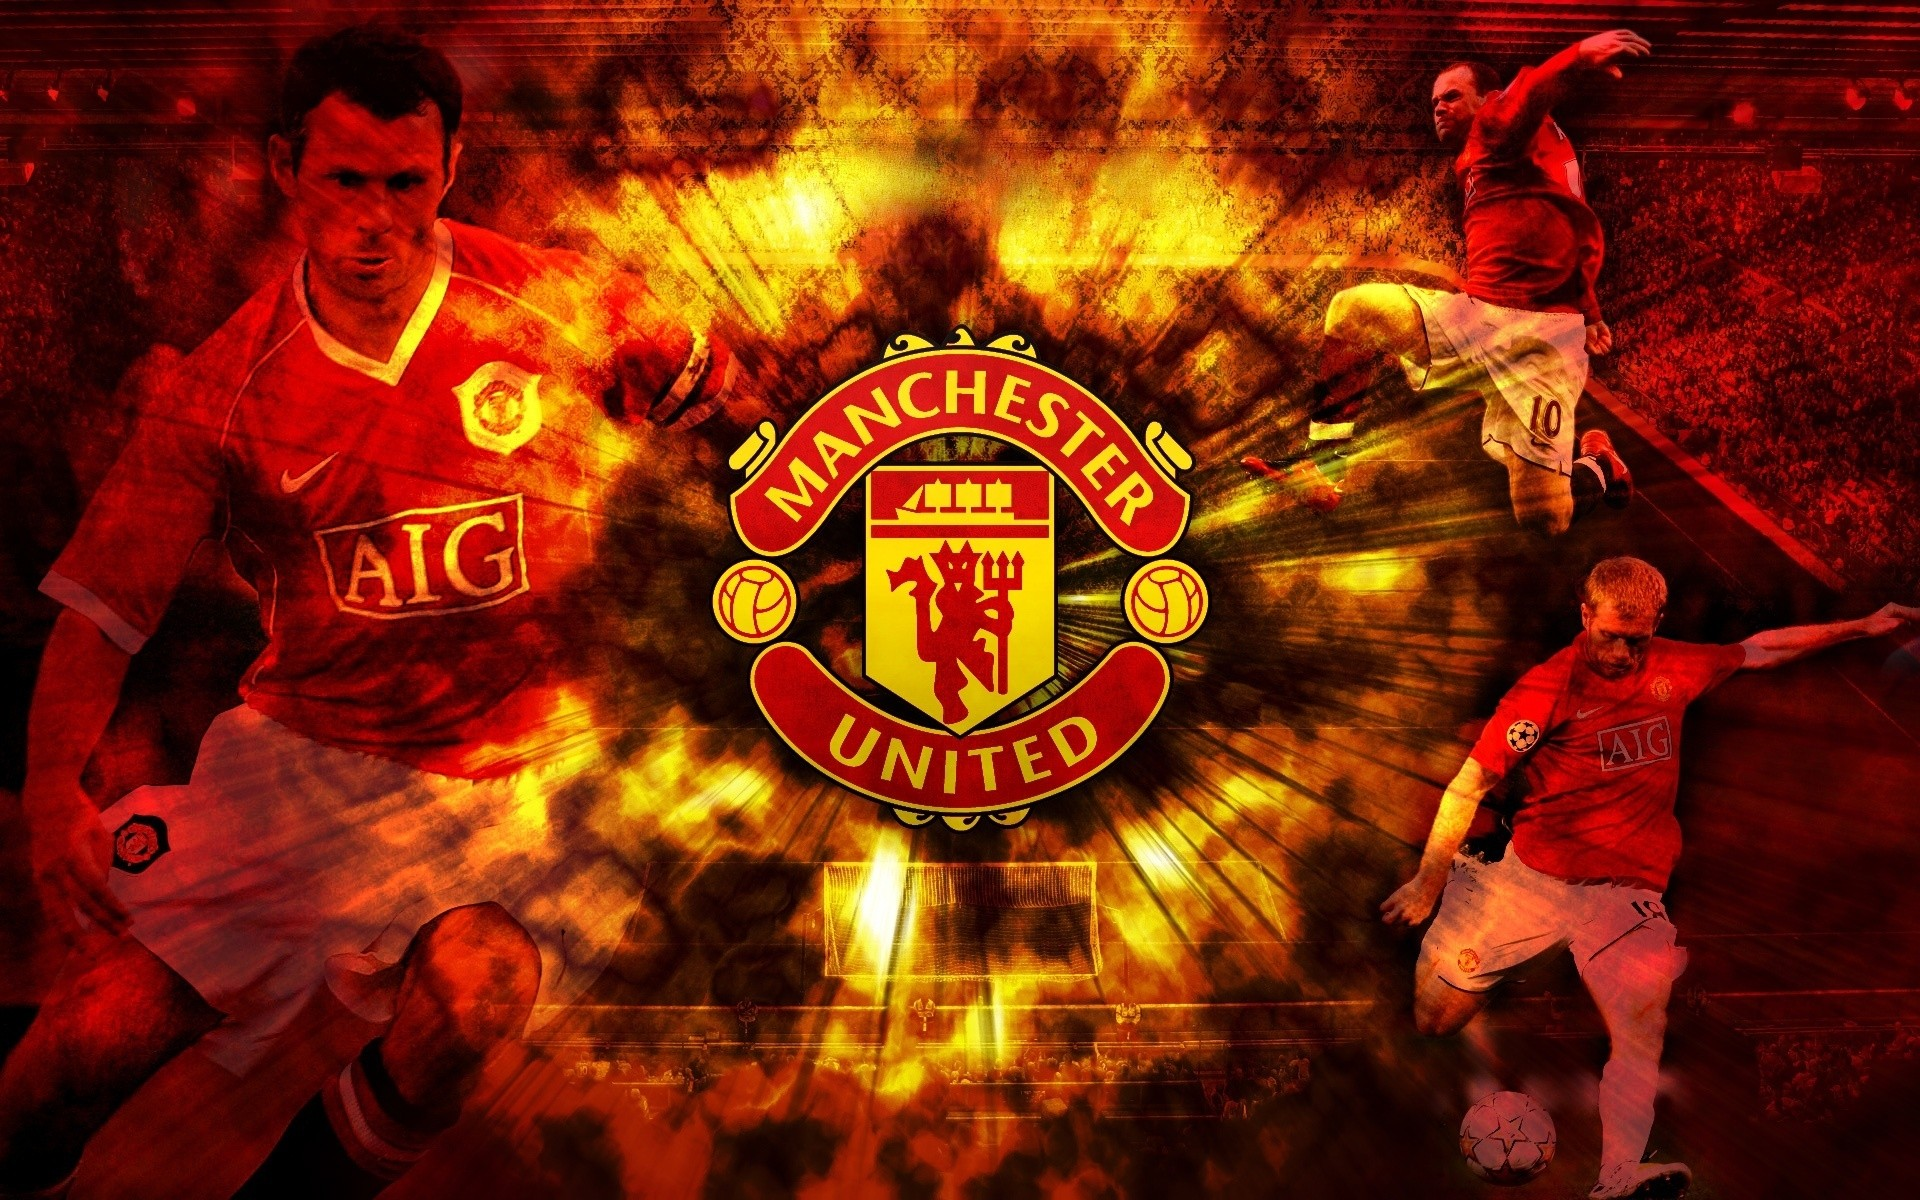 manchester united f c Founded in 1878 as newton heath l&yr football club, our club has operated for over 140 years the team first entered the english first division, then the highest league in english football, for the start of the 1892-93 season.